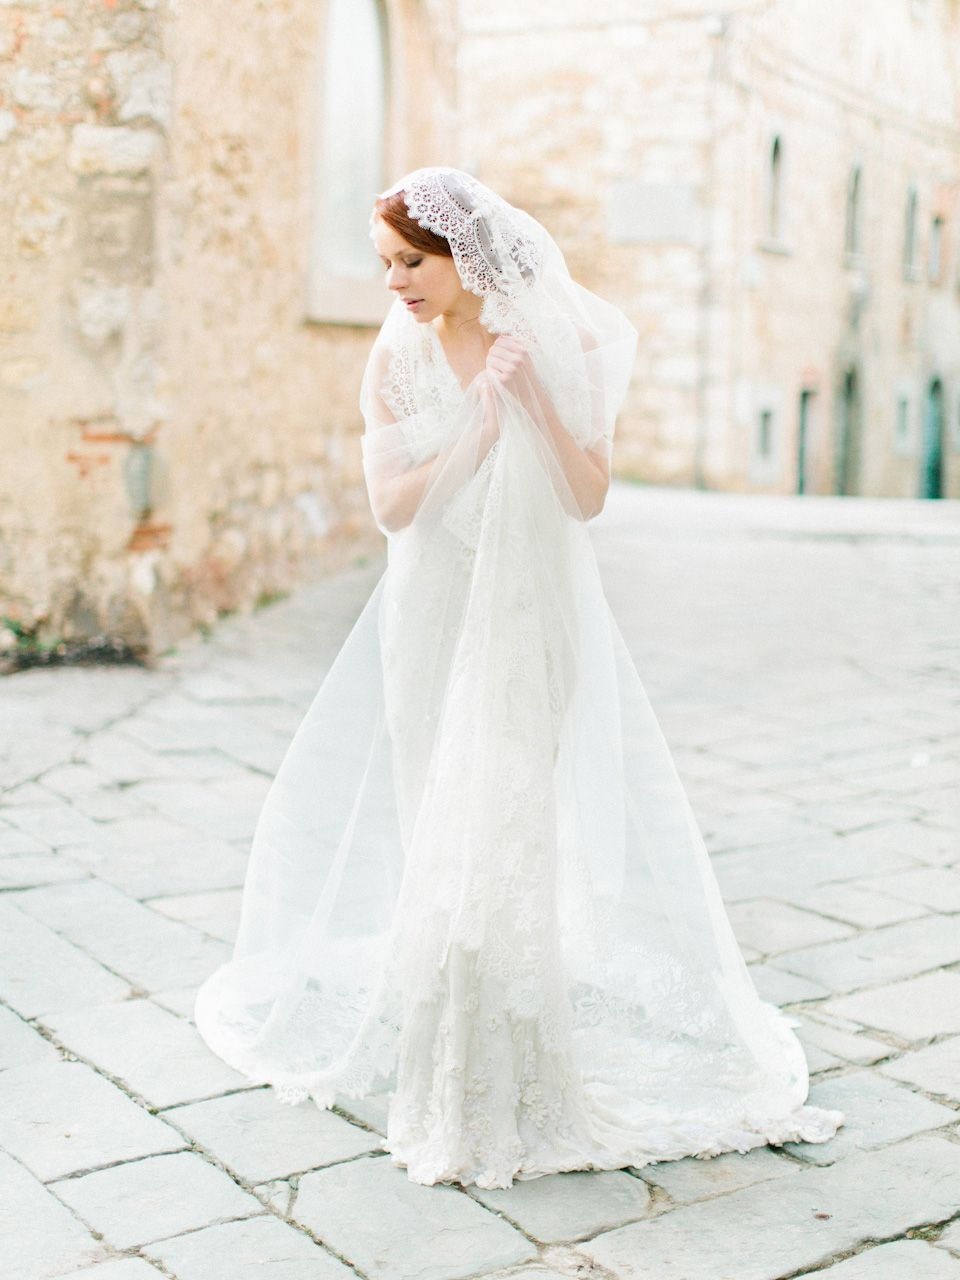 Cathedral wedding dress  SIBO Designs  FASHION  Bridal Veils u Accessories  Pinterest